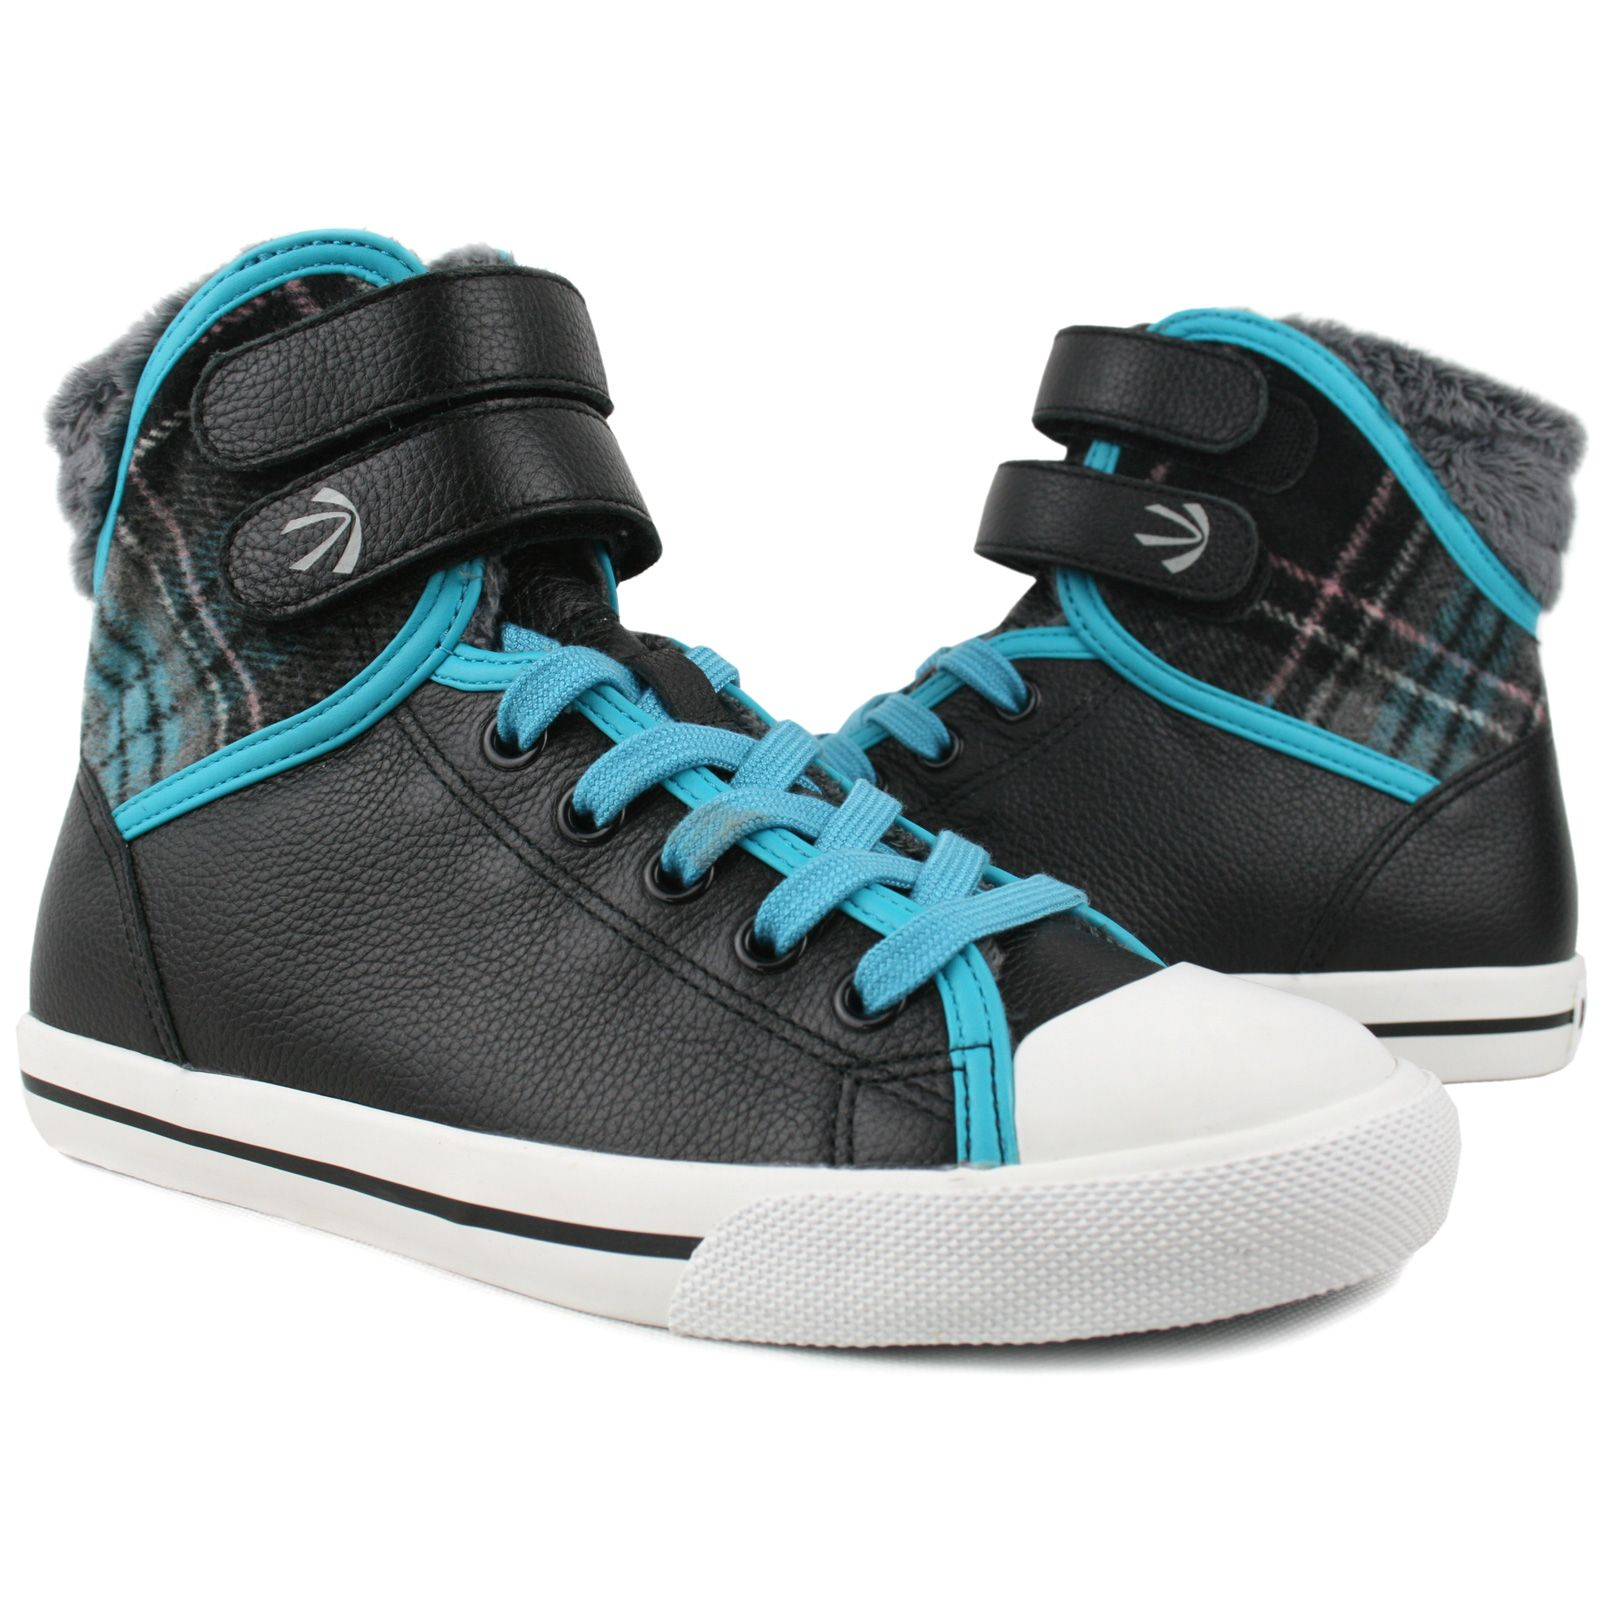 Burnetie Women's Leather High Top Strap | Leather high ...